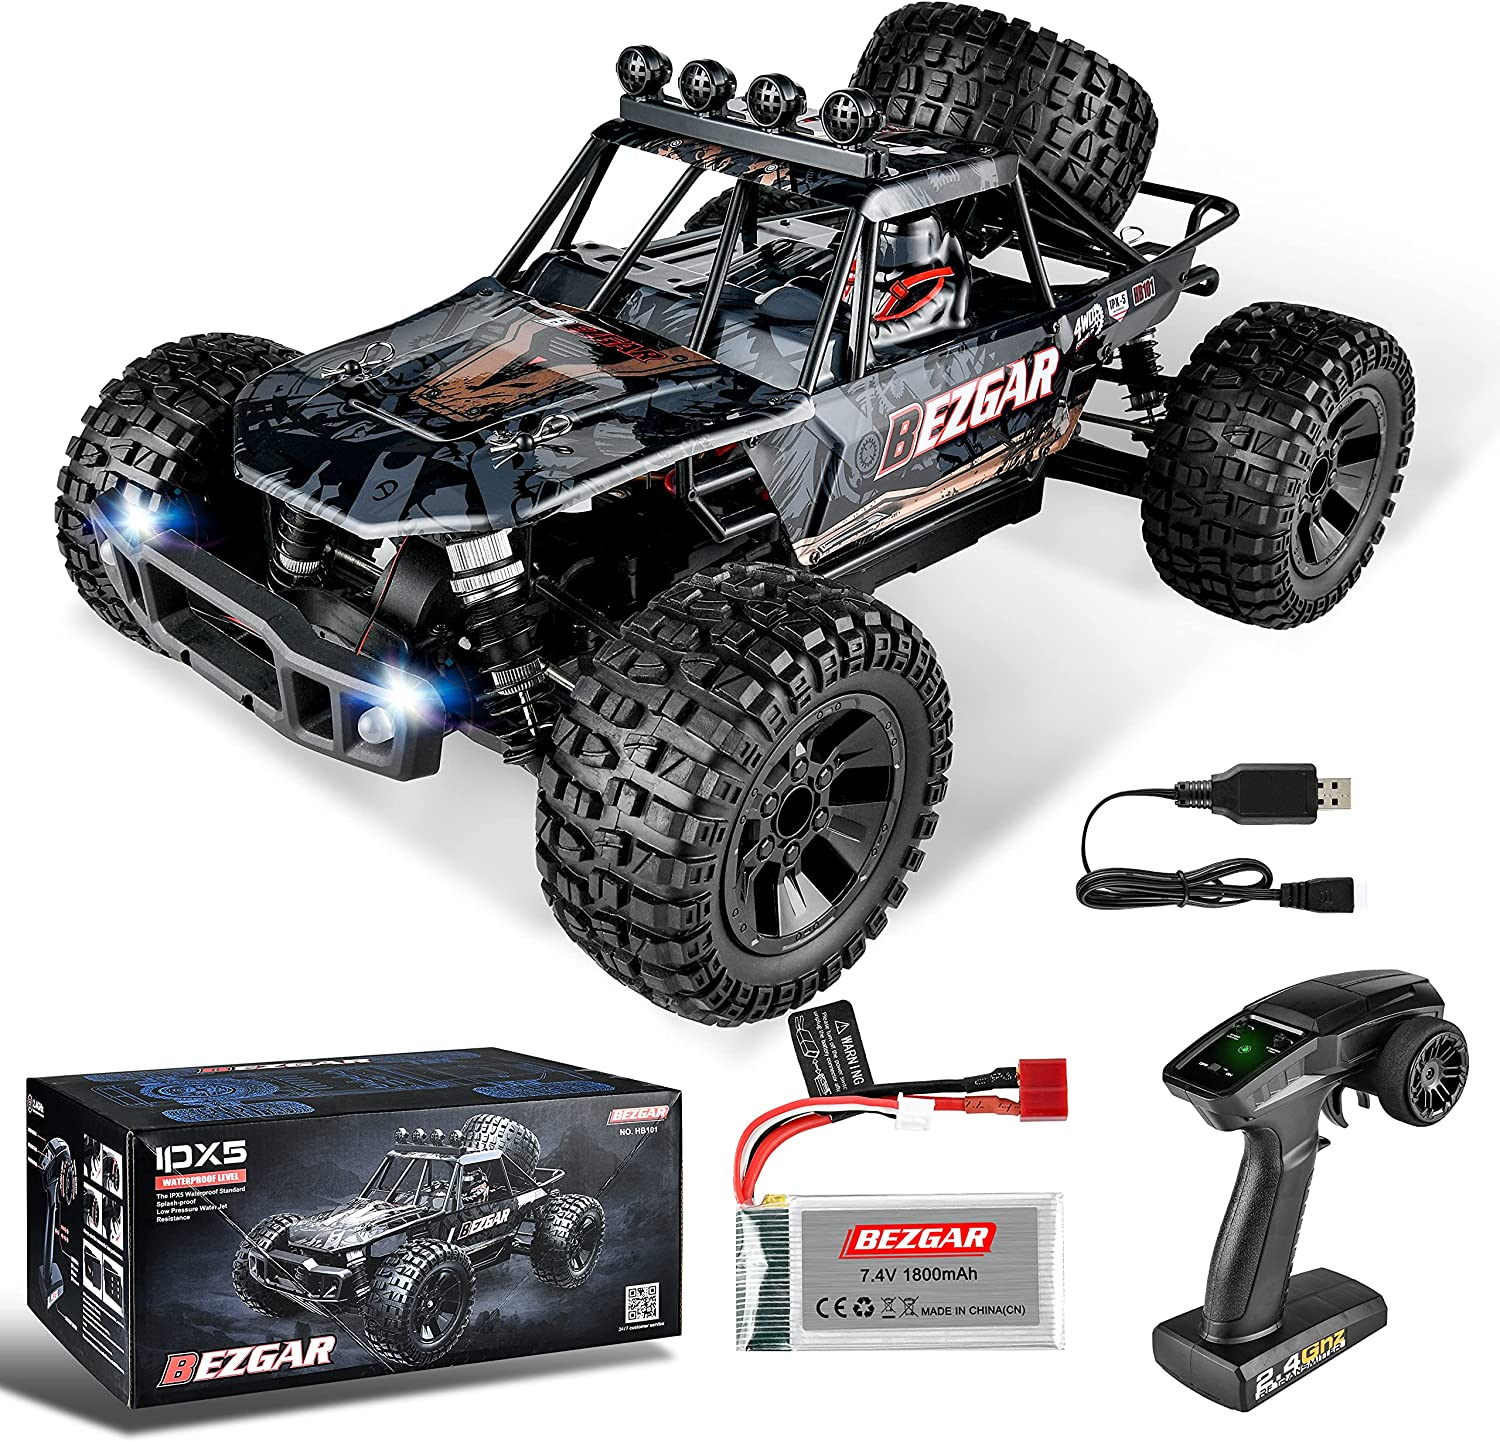 BEZGAR HB101 1:10 Scale Beginner RC High h Cheap 48km Truck 4WD Speed Limited time sale